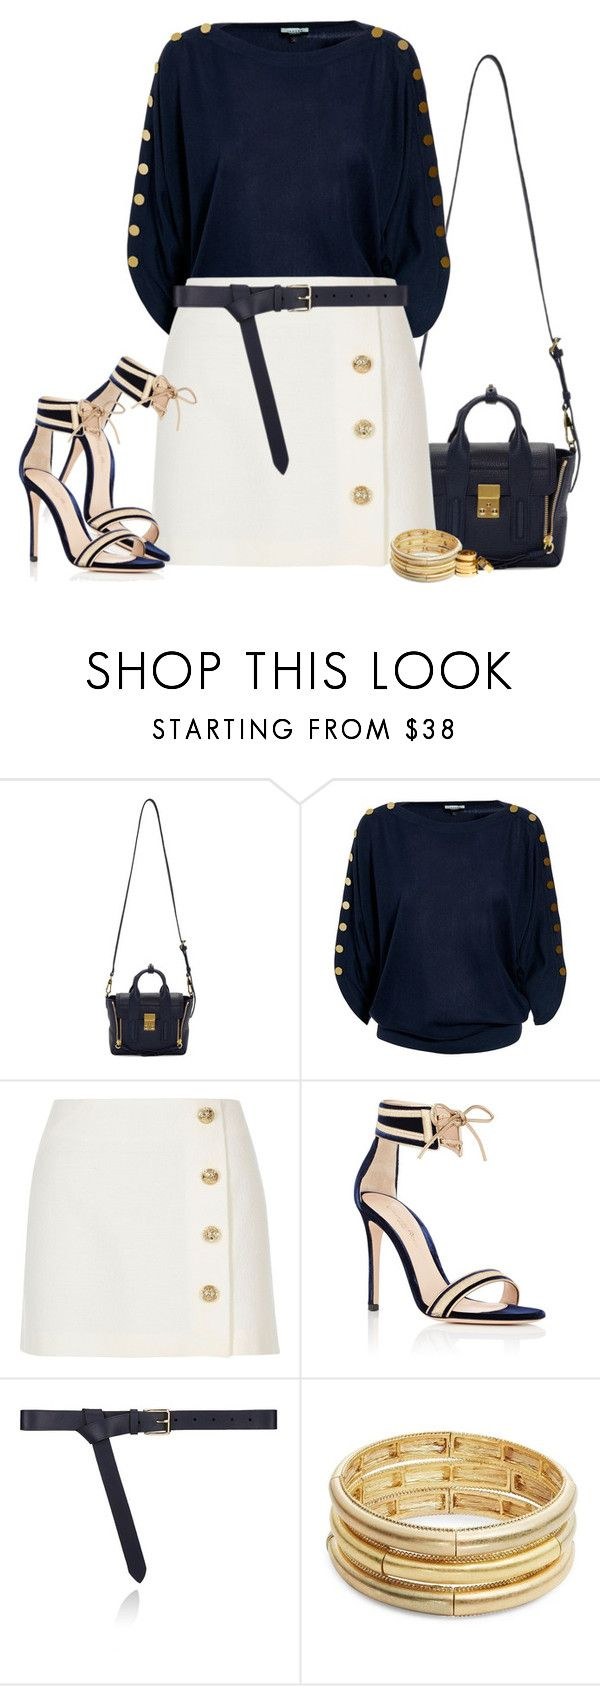 """que te sueño y que te quiero tanto."" by malala29 ❤ liked on Polyvore featuring 3.1 Phillip Lim, Jaeger, River Island, Gianvito Rossi, Maison Boinet, Nanette Lepore, H&M and goldandblue"